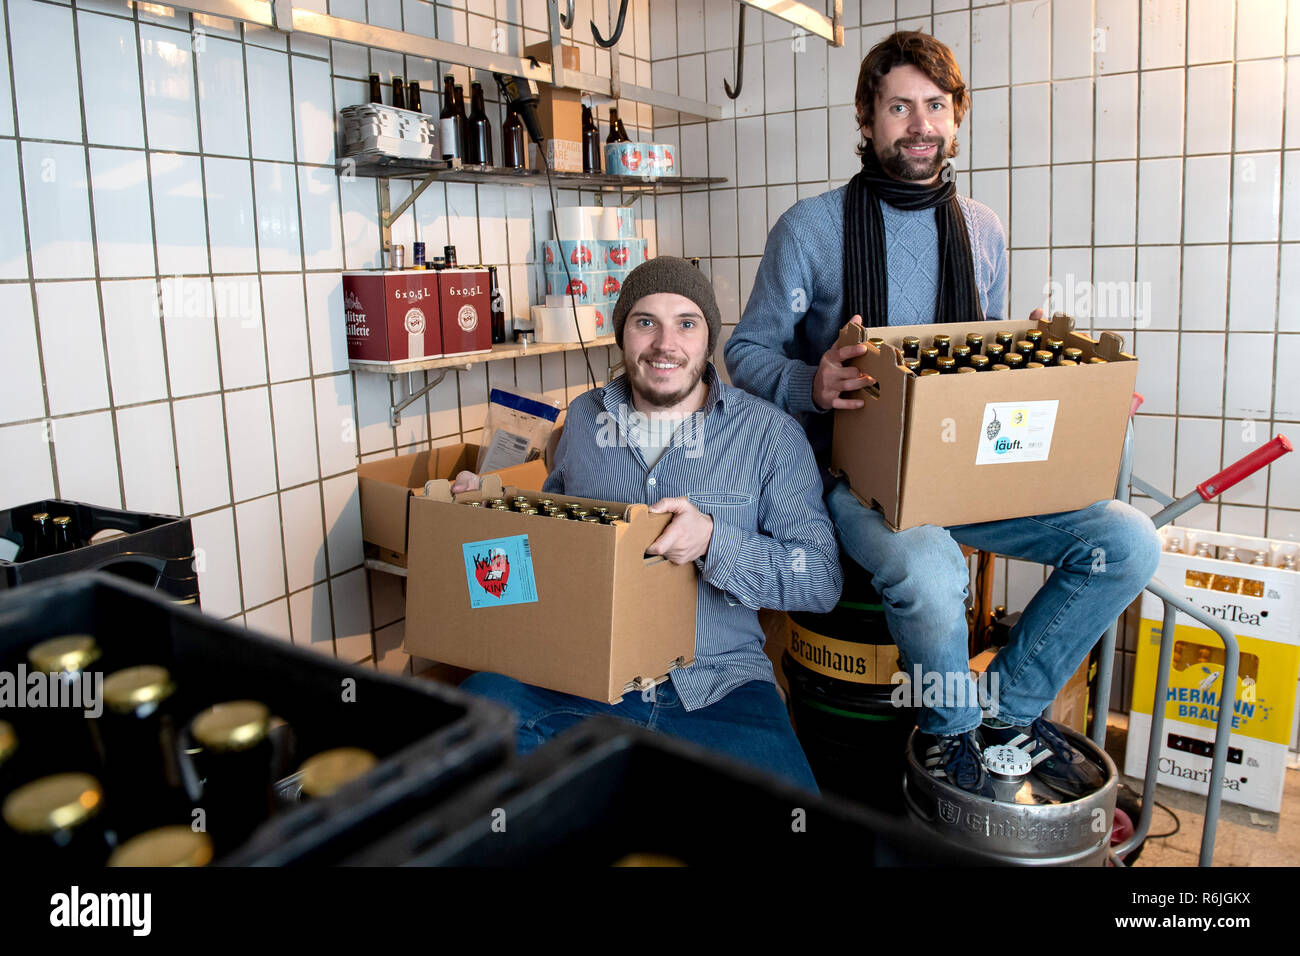 """Kassel, Germany. 22nd Nov, 2018. Erik Schäfer (l) and Johannes Alt, owners of the brewery Steckenpferd, each sit with a box of Craft Beer in the lager of the brewery. (to dpa """"Successful in the niche - Craft beer brewers assert themselves on the market"""" of 06.12.2018) Credit: Swen Pförtner/dpa/Alamy Live News Stock Photo"""